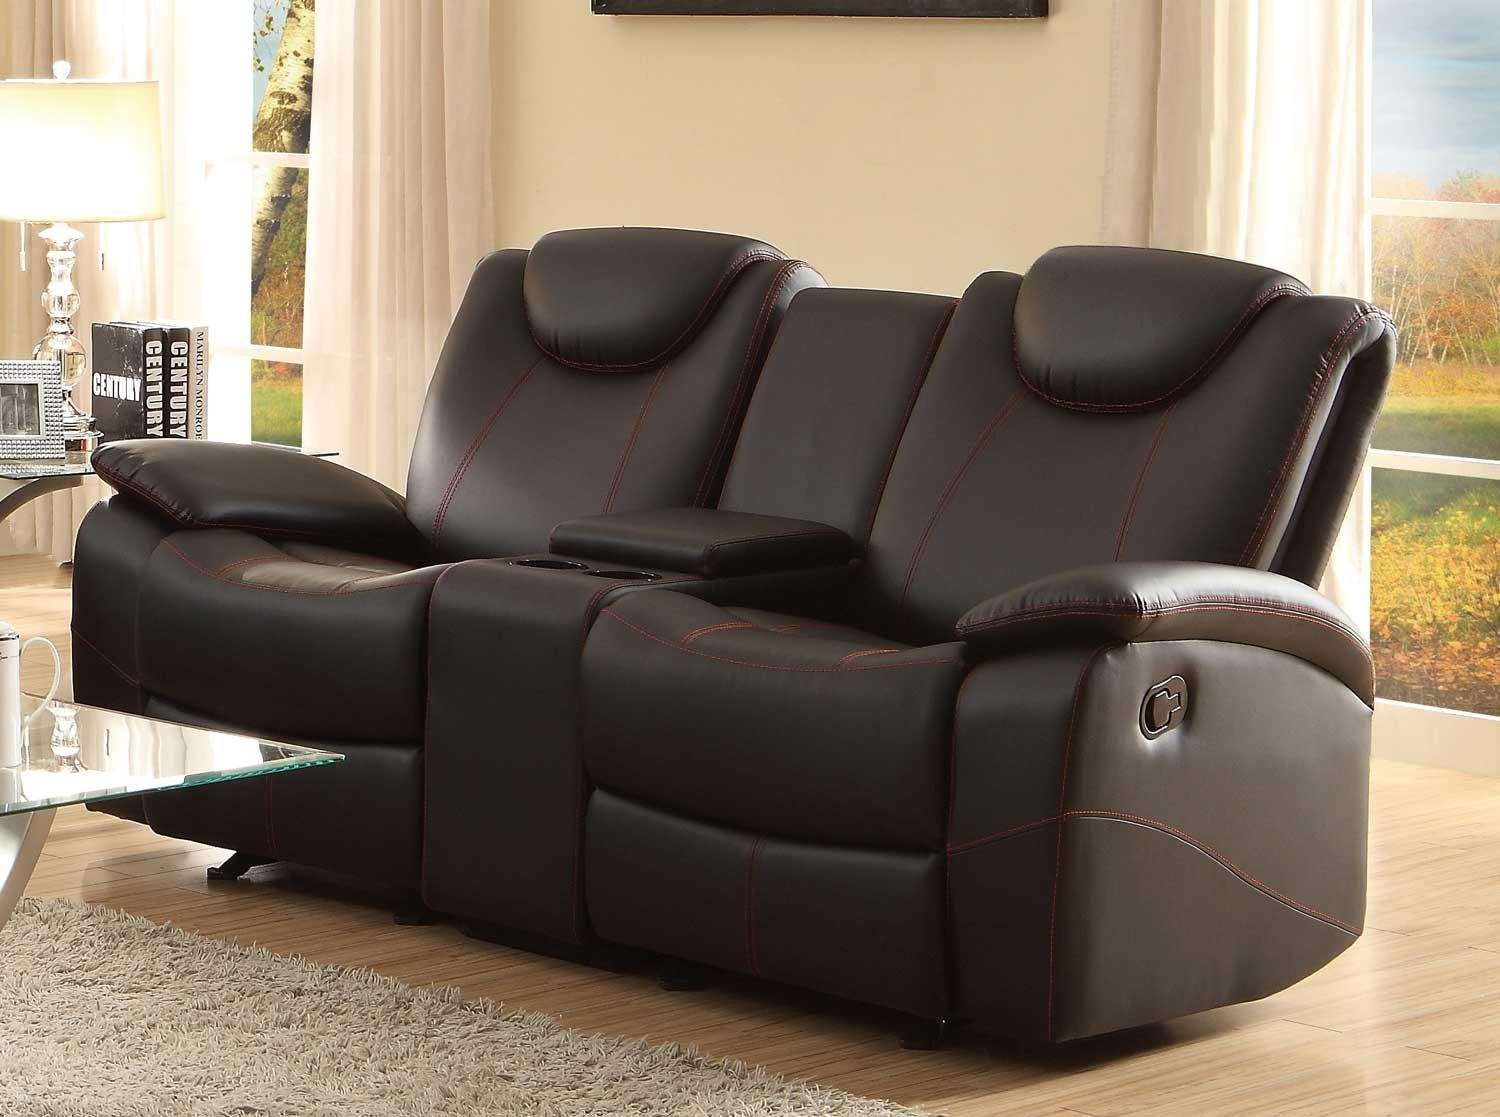 Homelegance Talbot Double Glider Reclining Love Seat With Center Inside Sofas With Console (View 17 of 20)